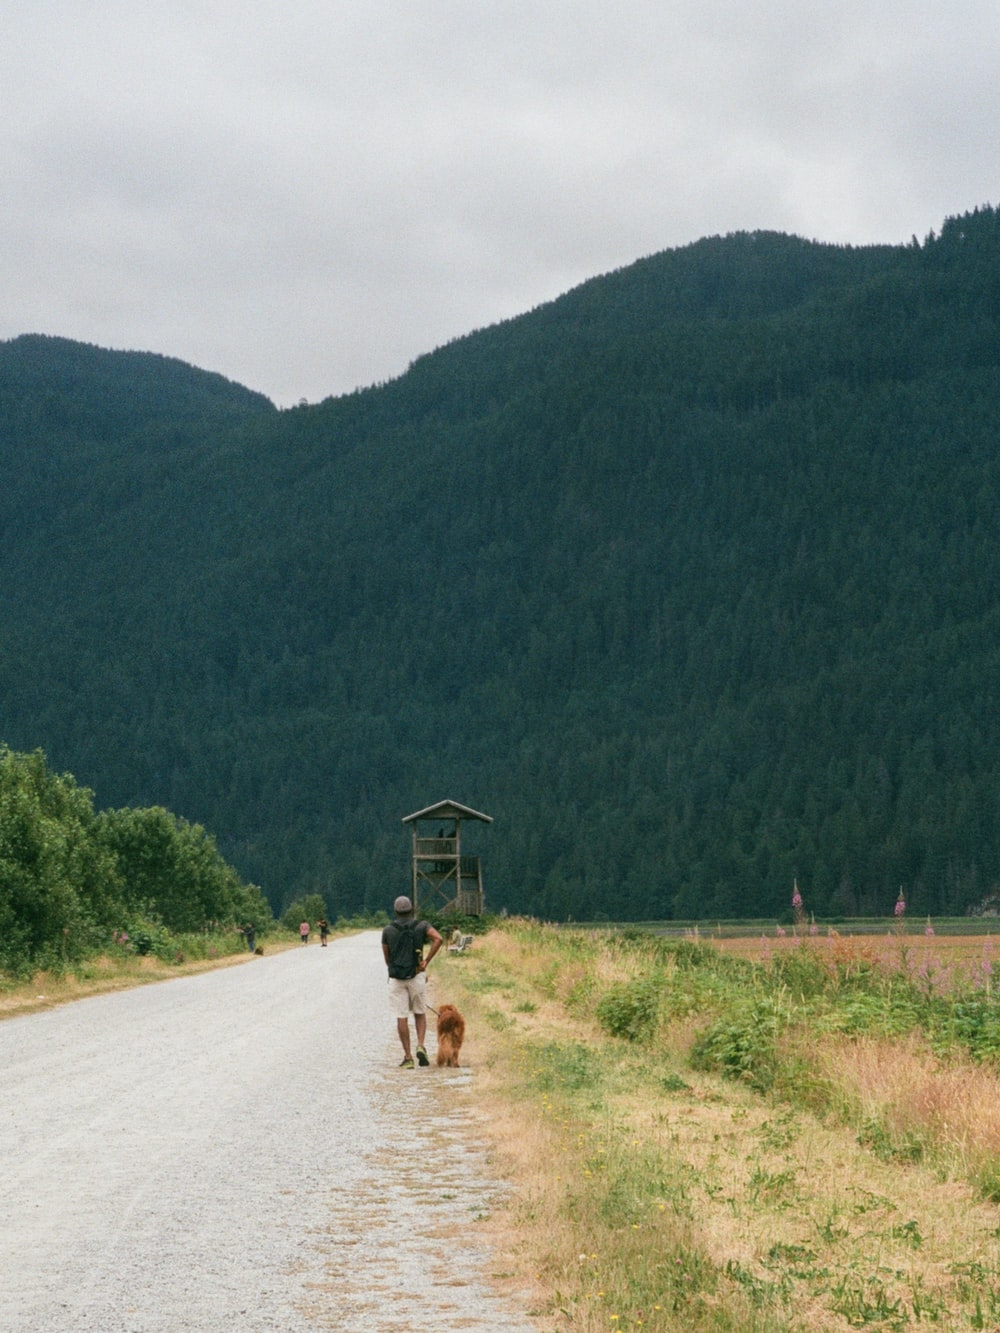 2 people riding on brown horse on road during daytime